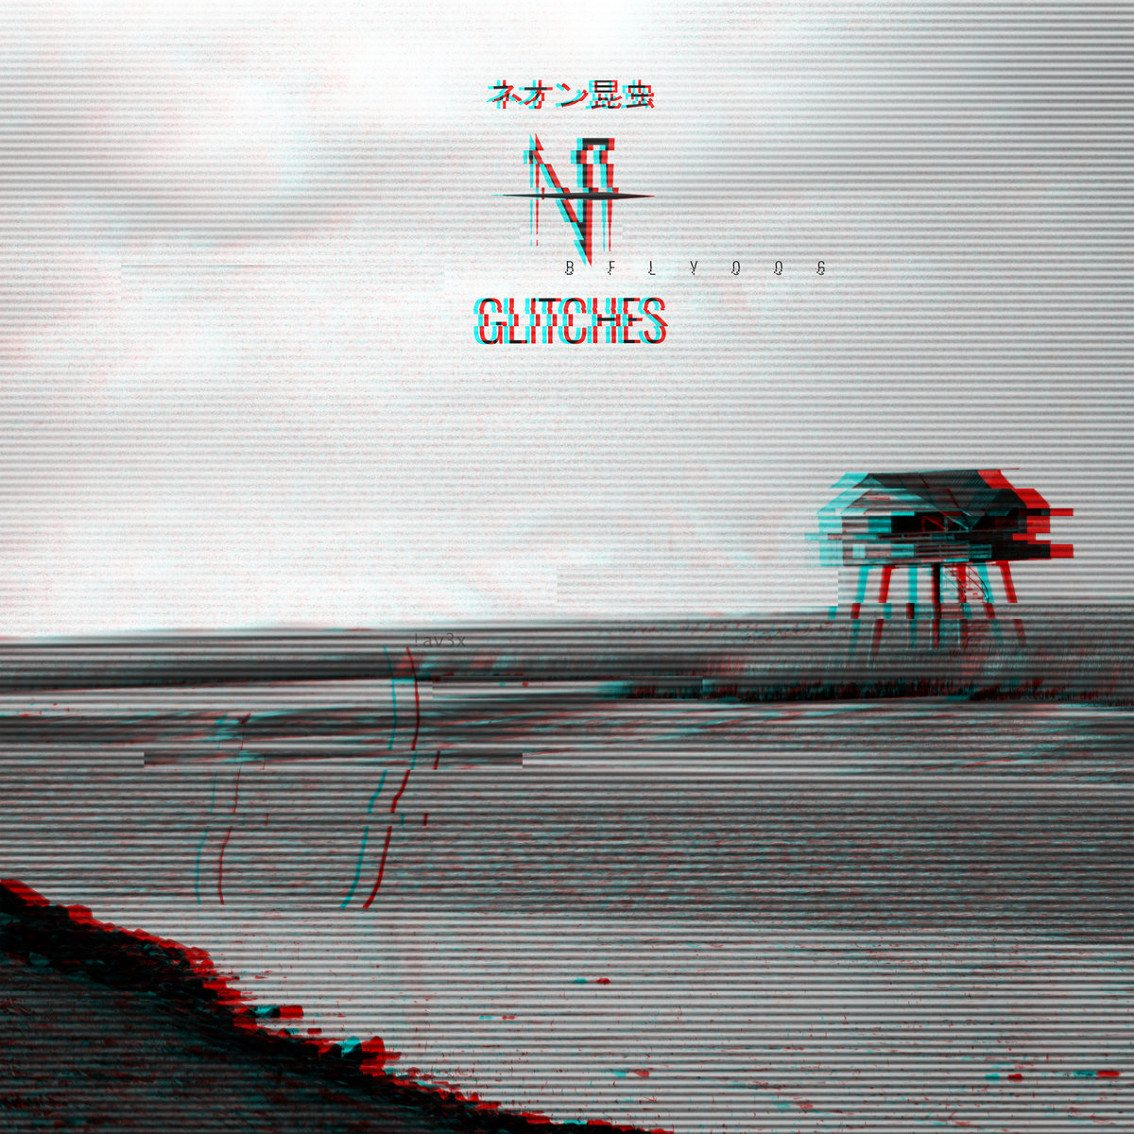 Neon Insect launches'Glitches' album later in February feat. Claus Larsen (Leaether Strip)